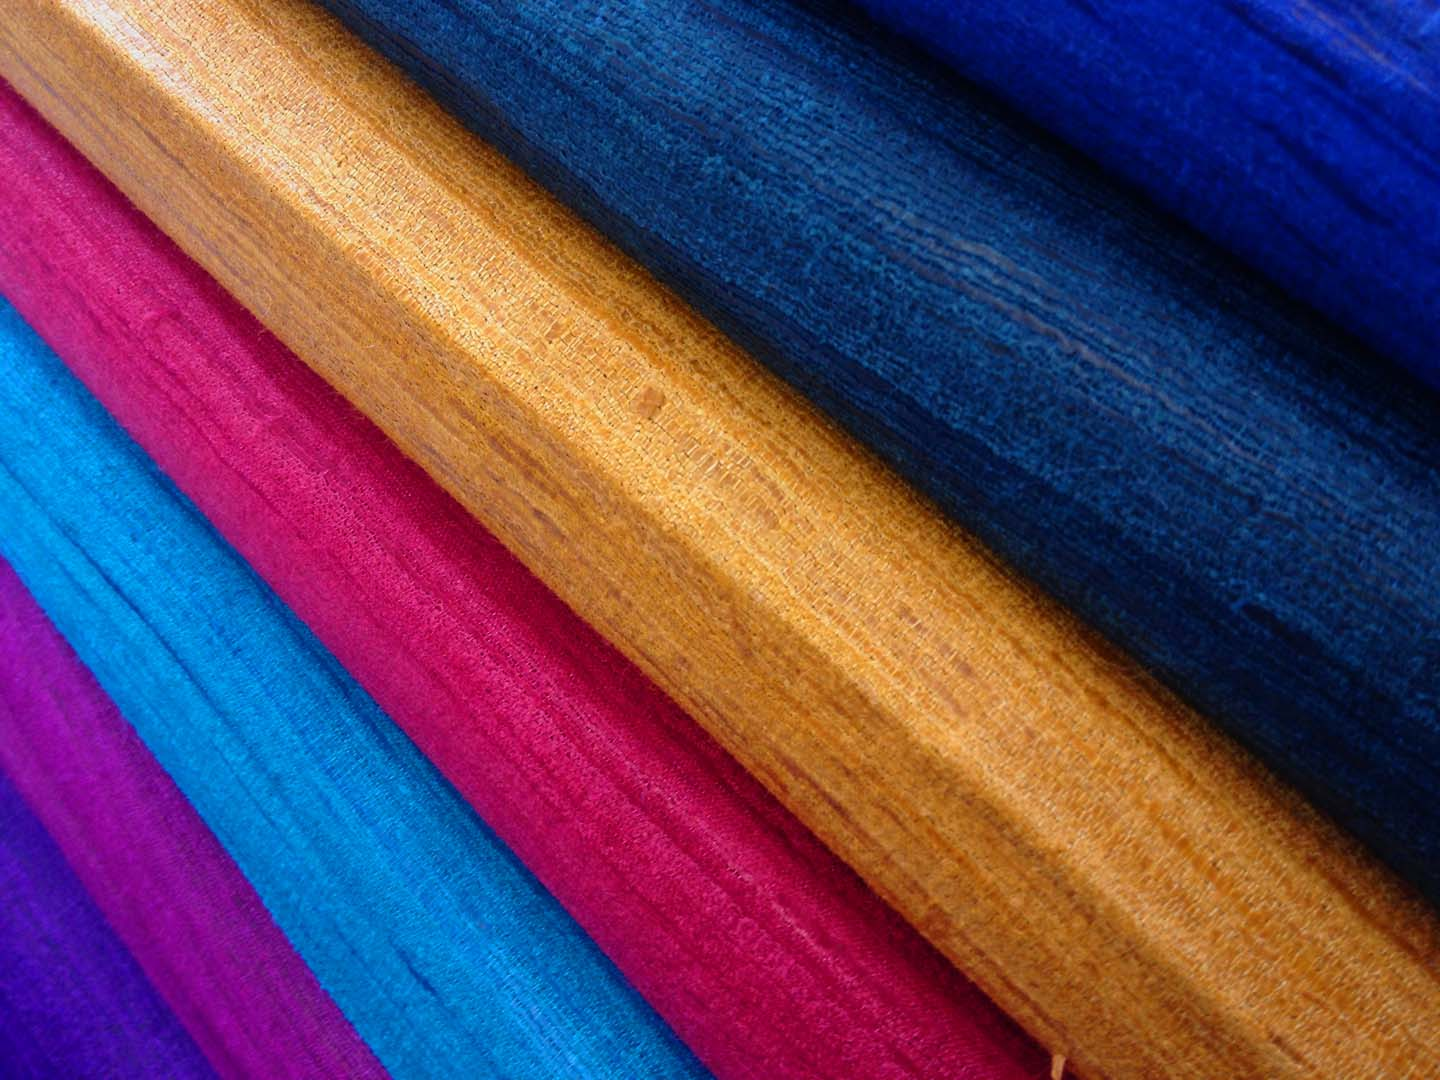 Raw Silk: All About Raw Silk and Uses of Resham Silk Fabric